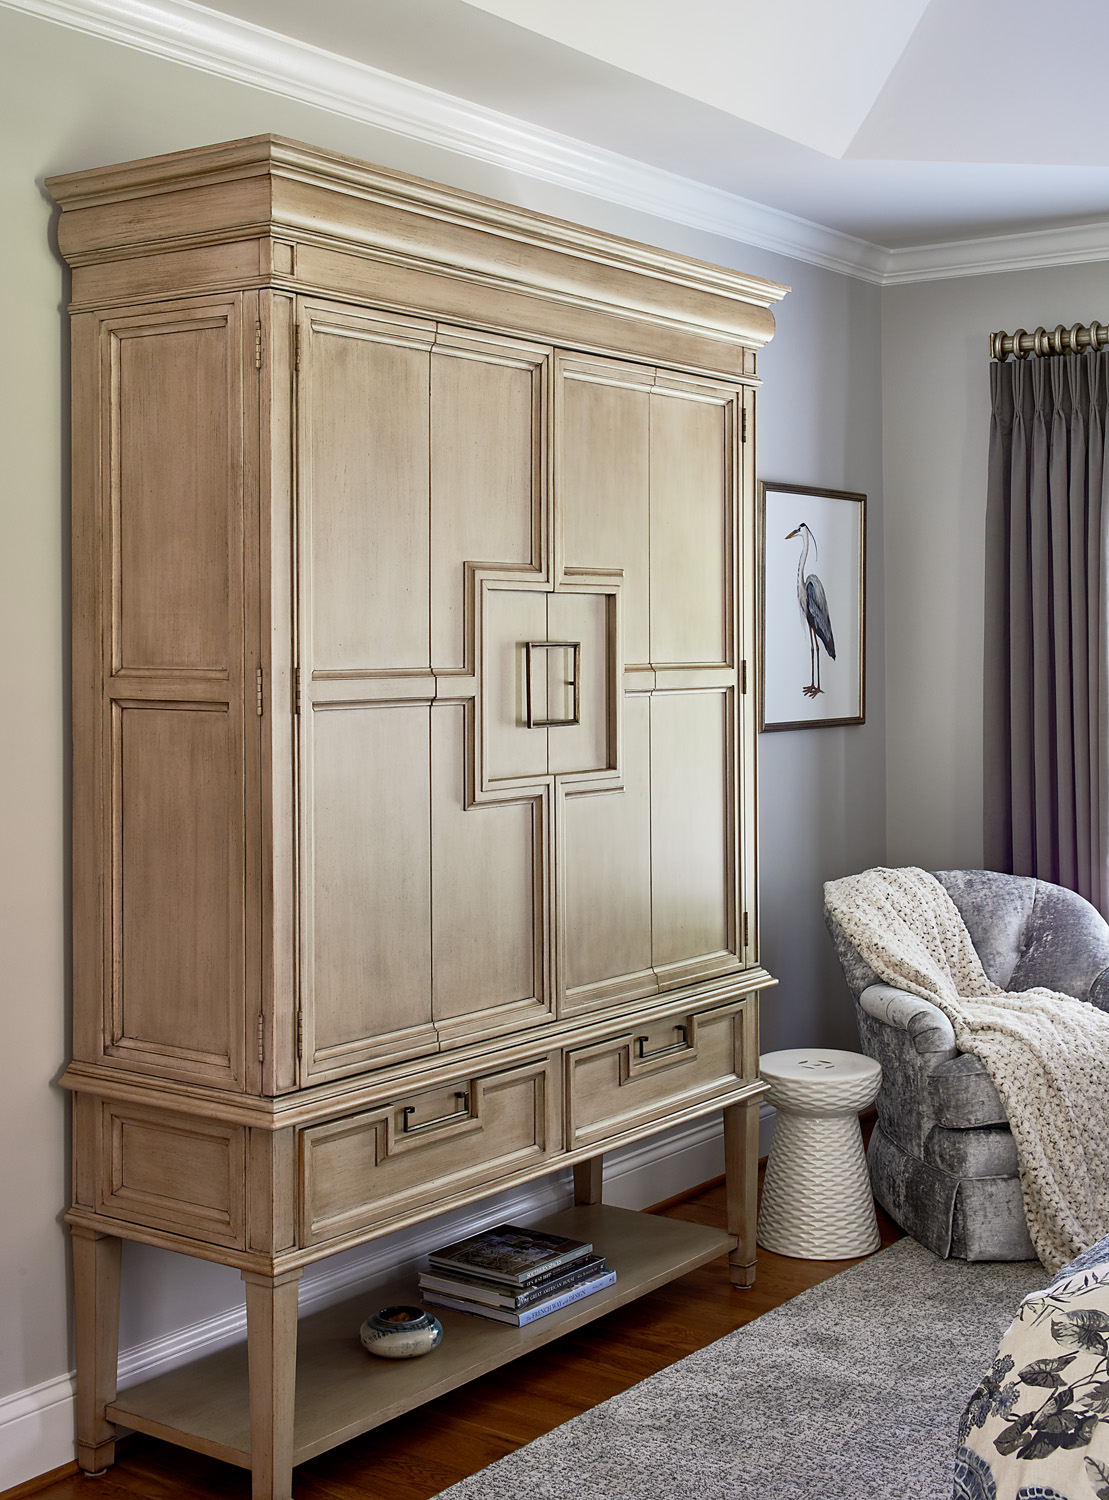 Large wardrobe with square door design